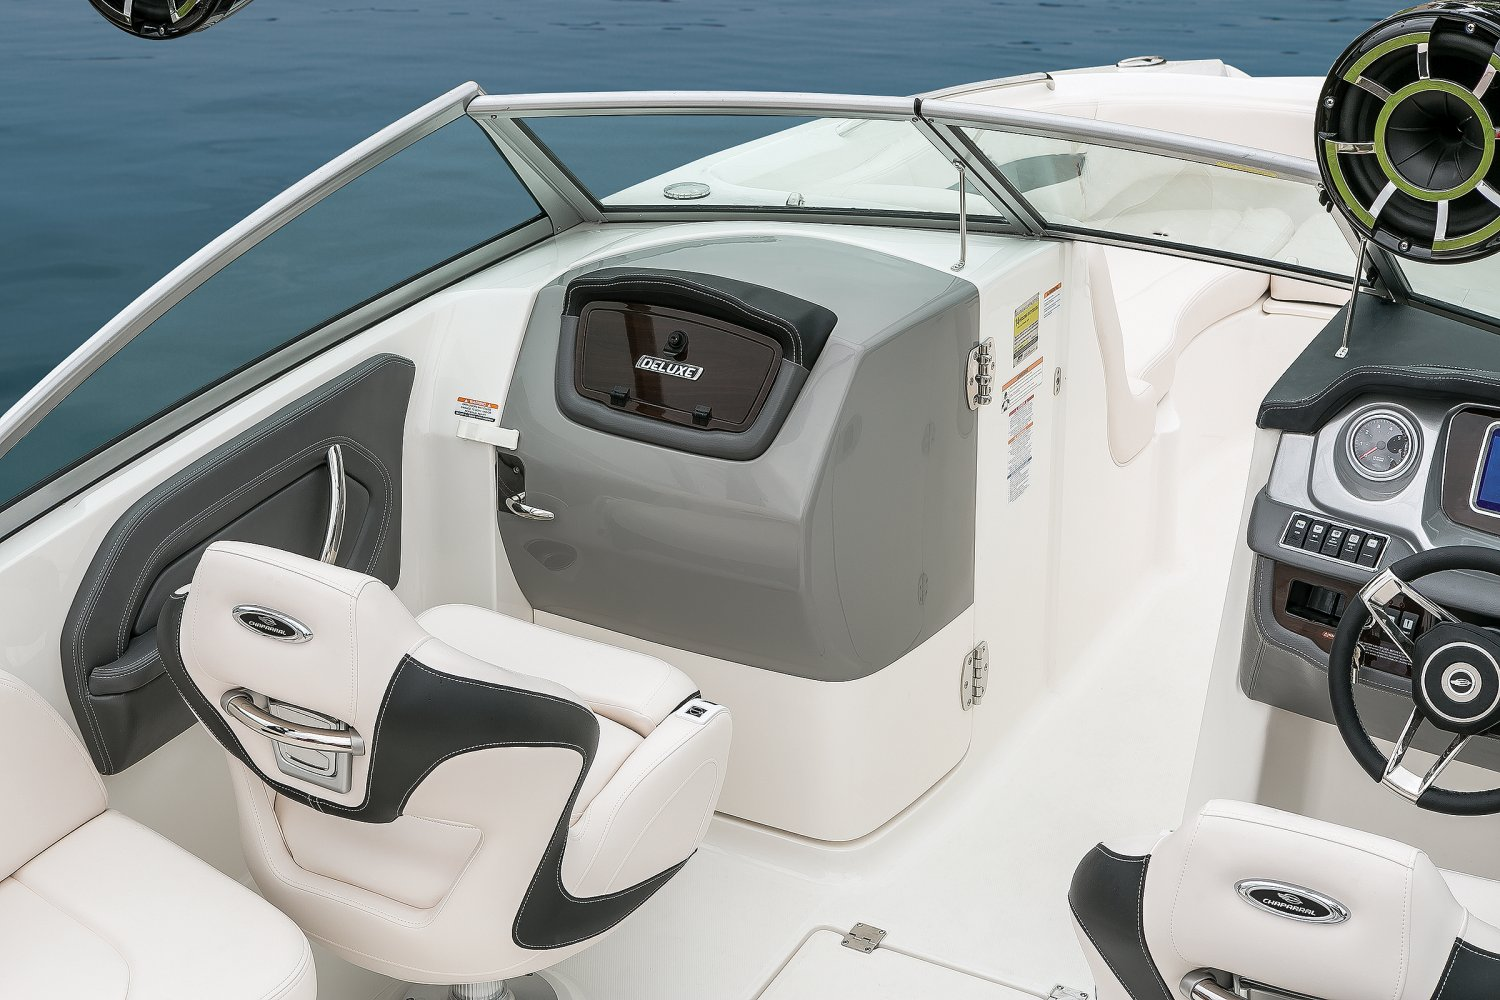 Image of a Solid Blue Hull 2018 244 Sunesta  Port Console